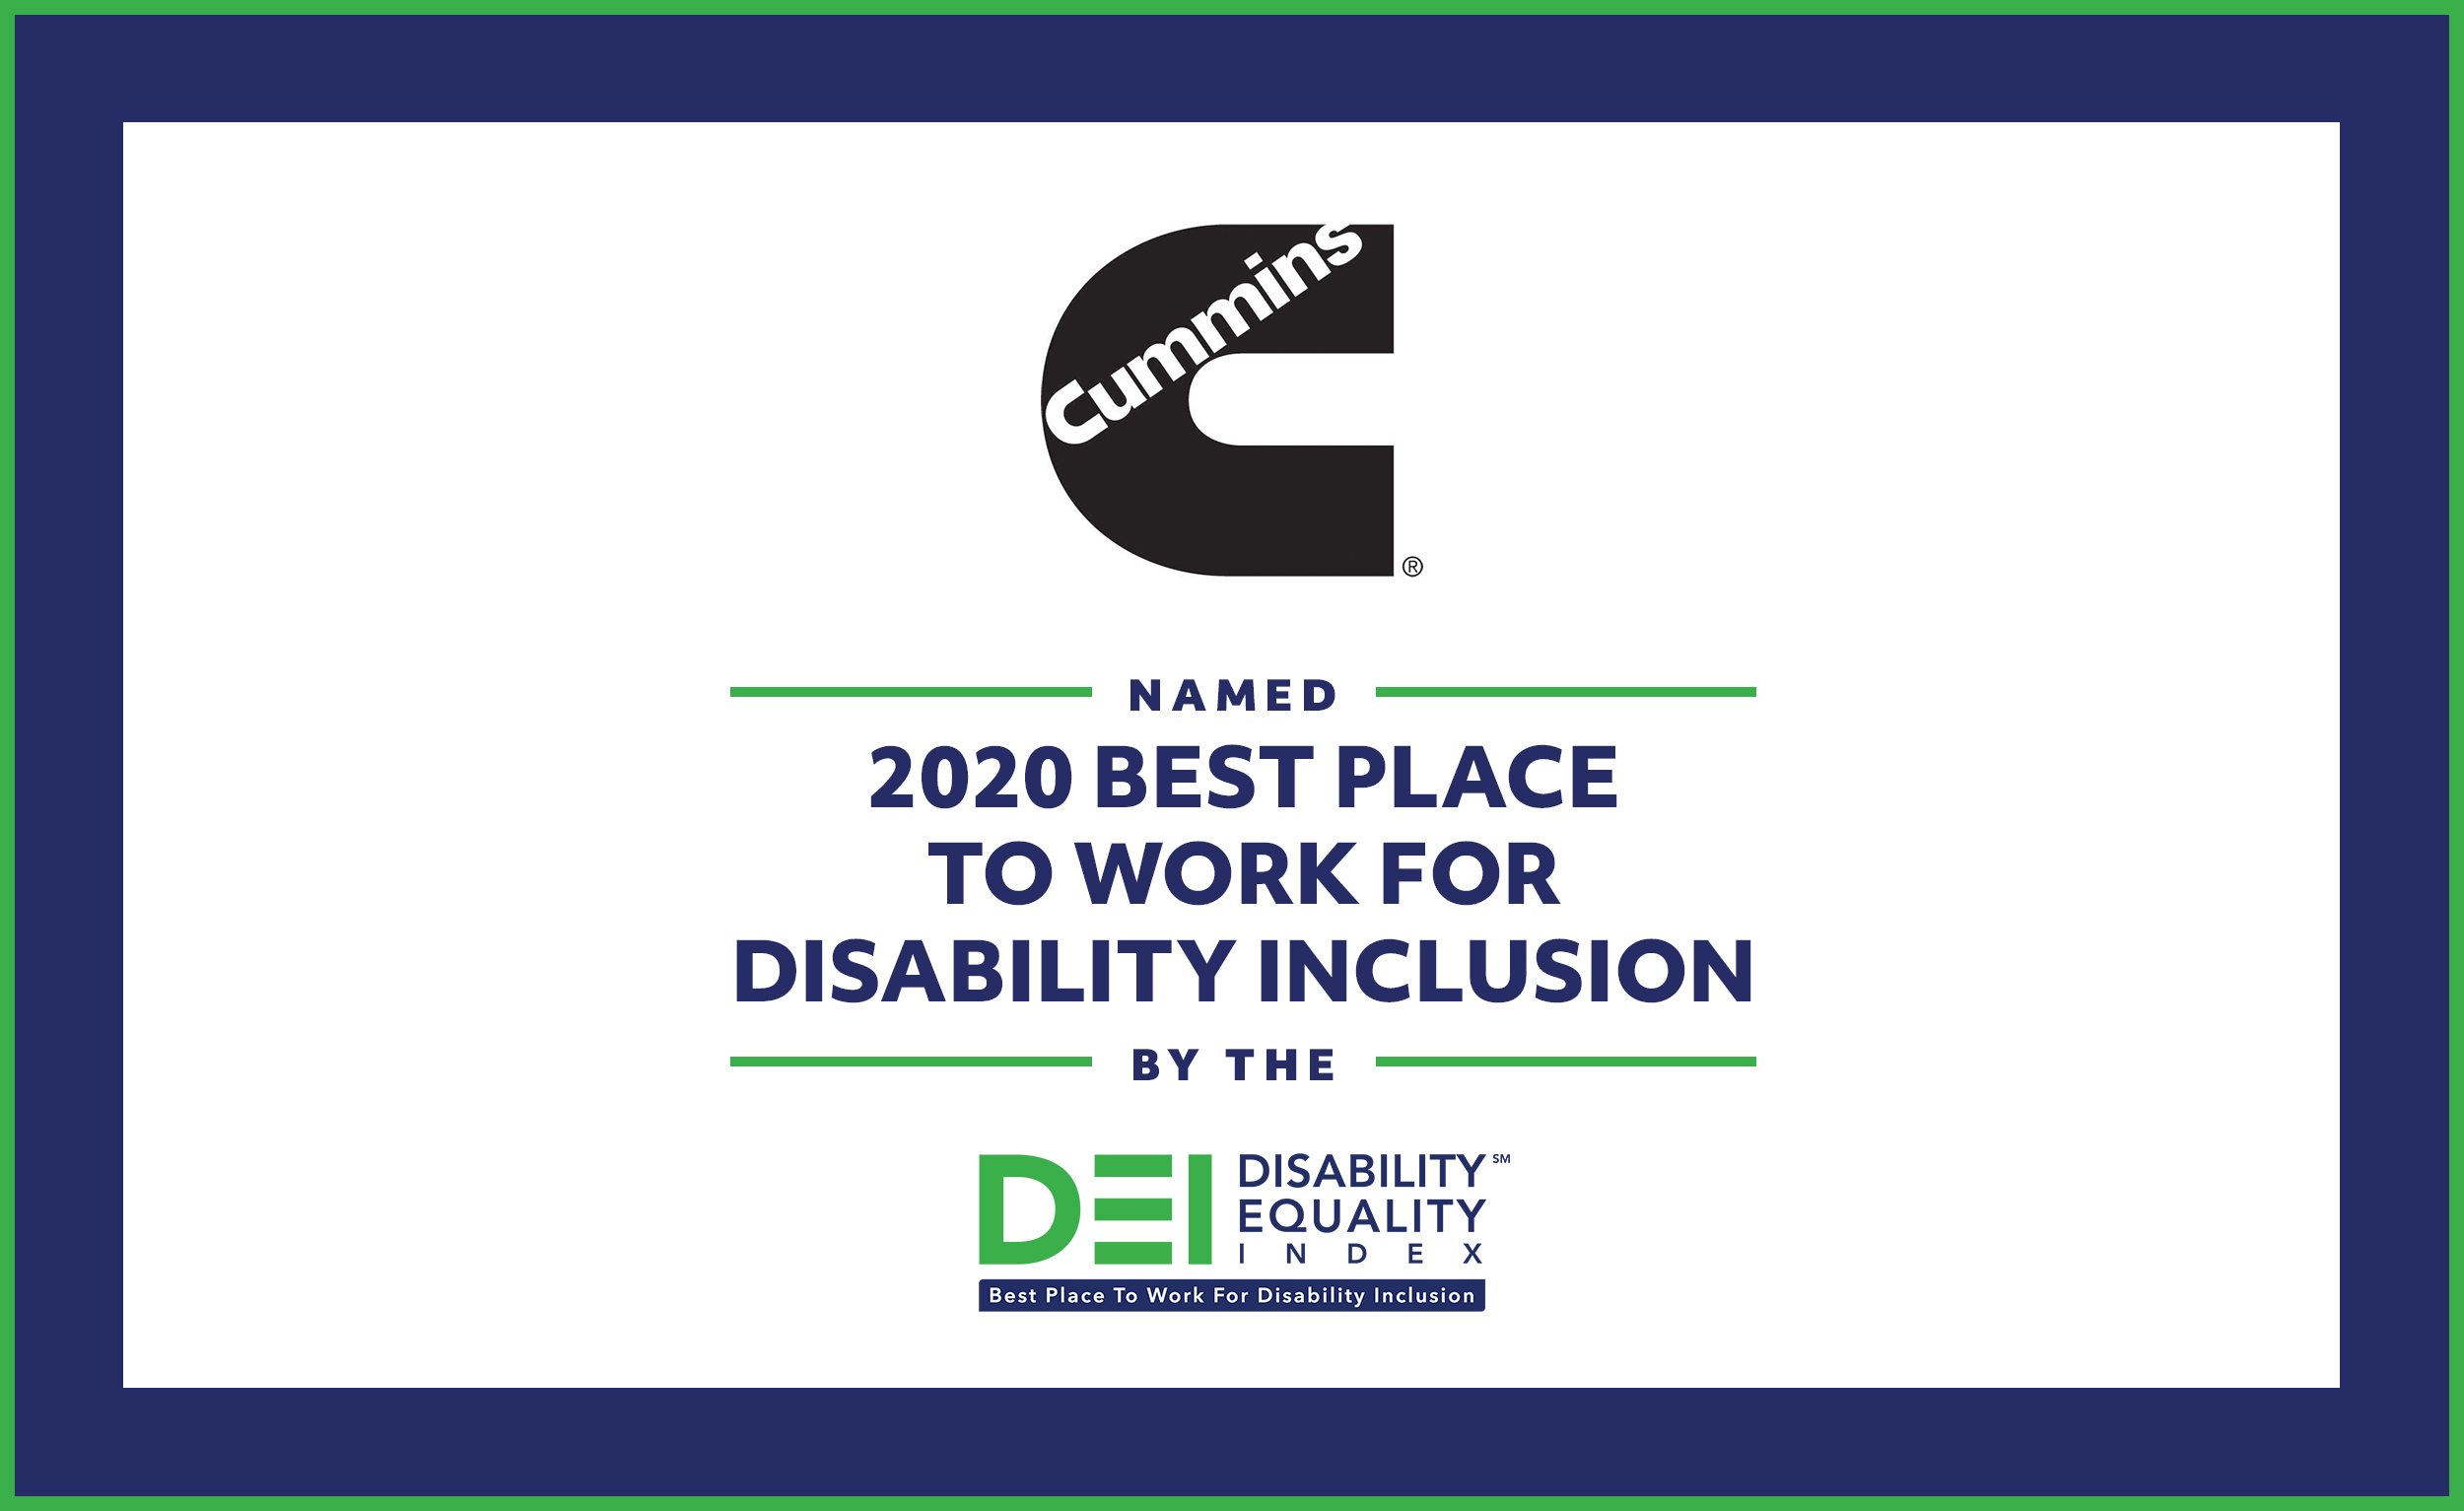 Cummins has been named a Top-Scoring Company on the 2020 Disability Equality Index® (DEI)